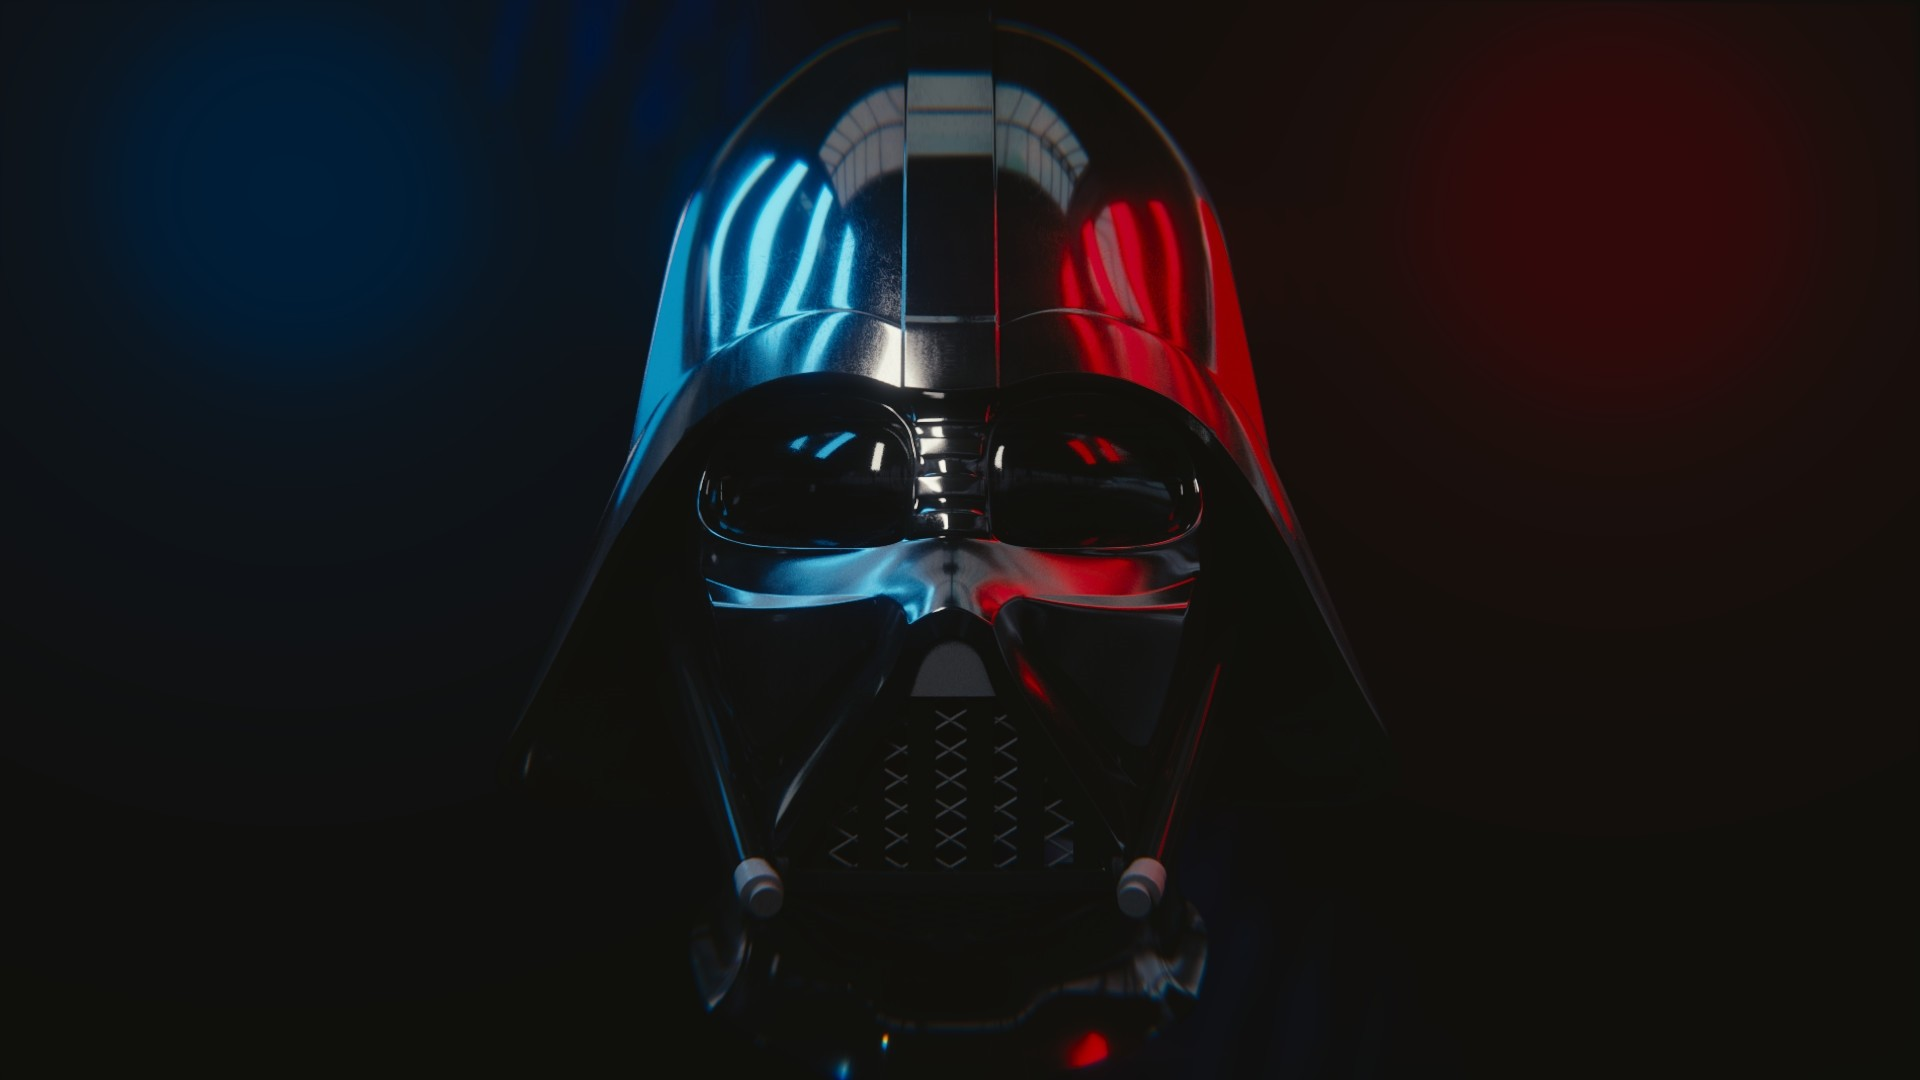 Darth Vader Wallpaper Full HD